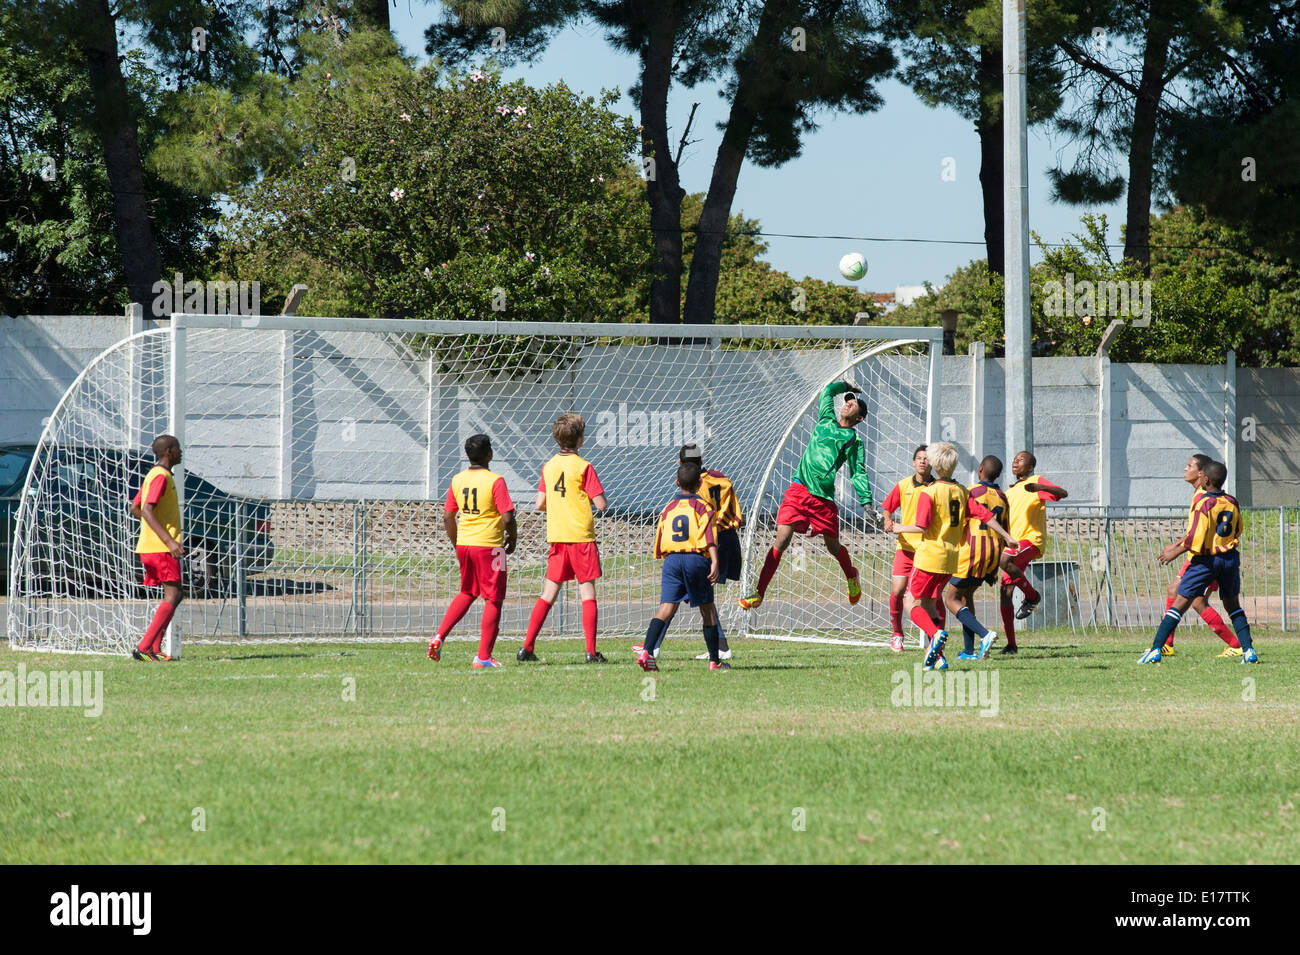 Goalkeeper jumping in the air other football players watching the ball, Cape Town, South Africa - Stock Image